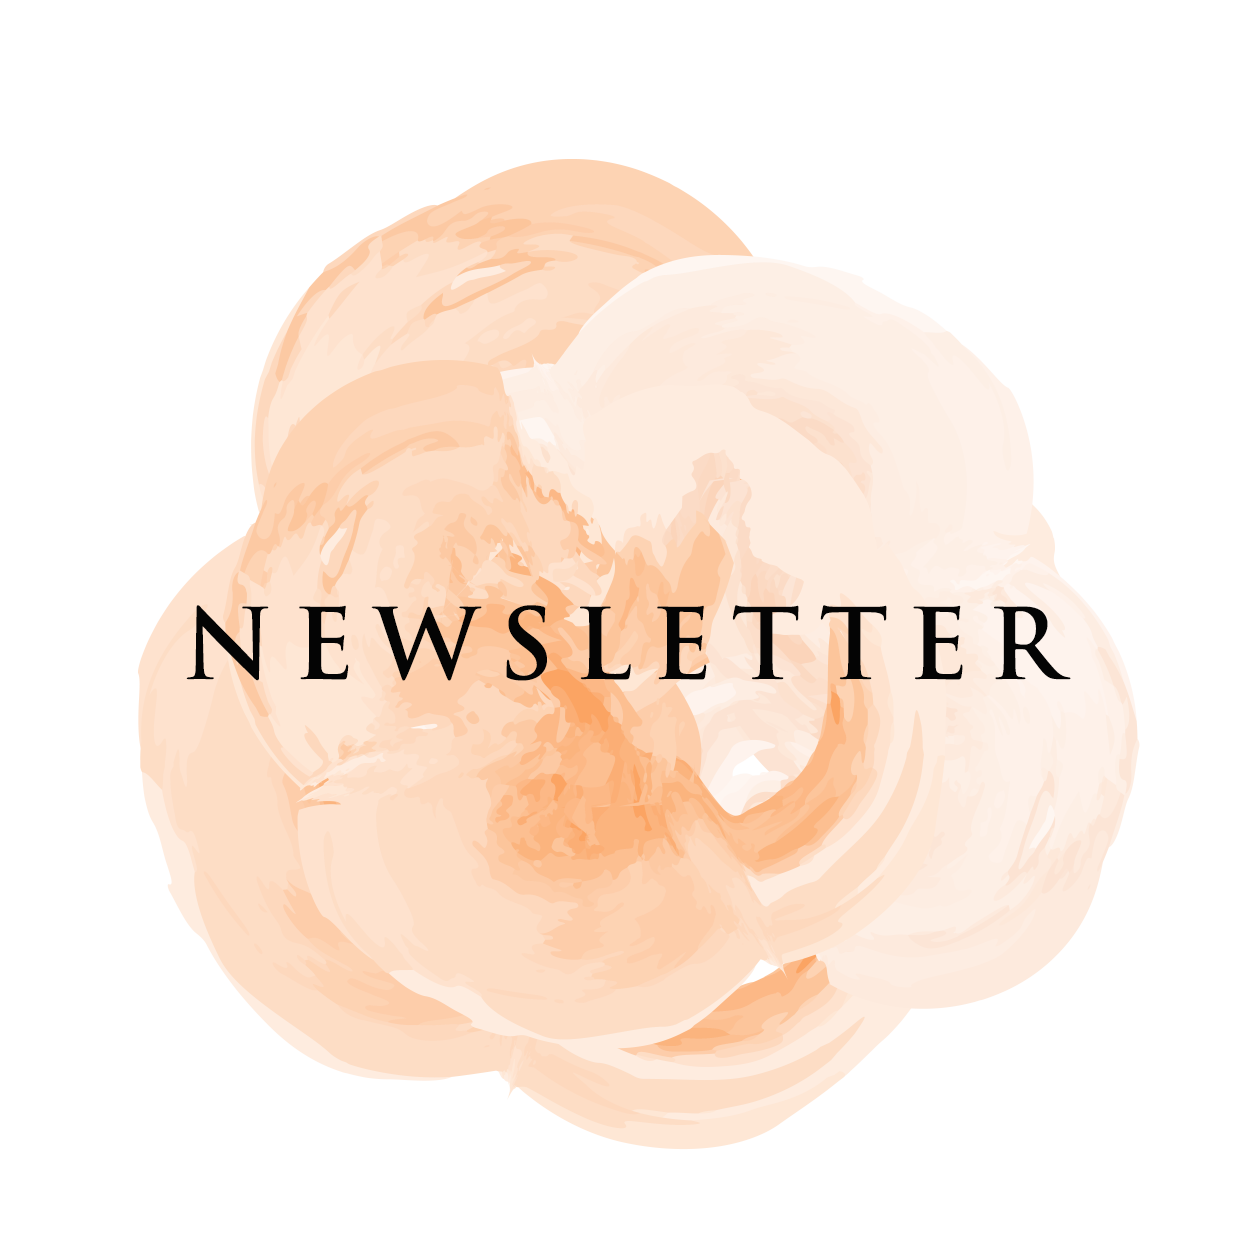 Newsletterlogo.png